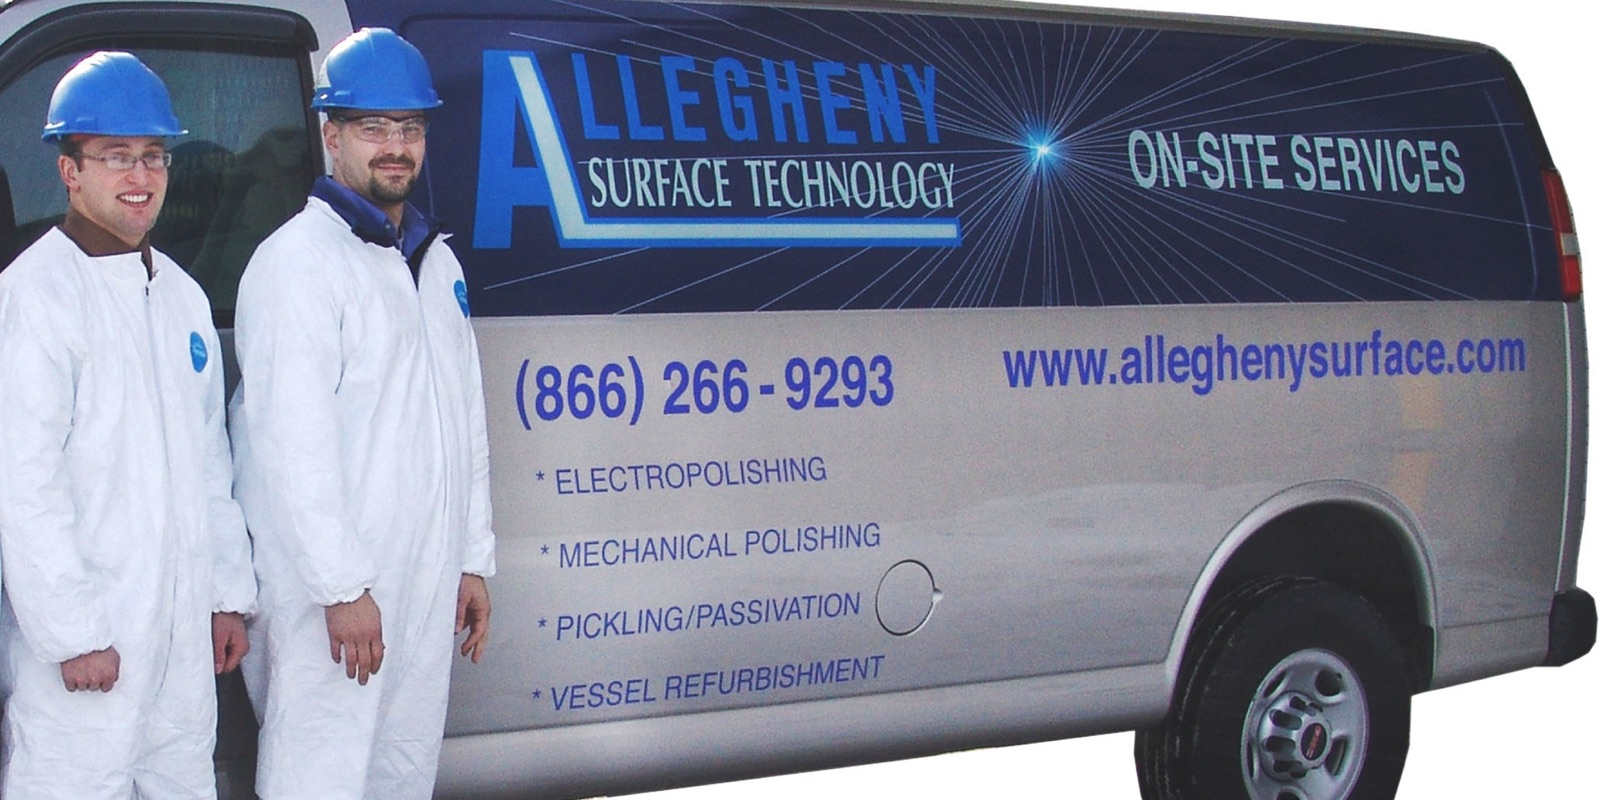 Allegheny Surface Technology technicians standing in front of a AST on-site services van.